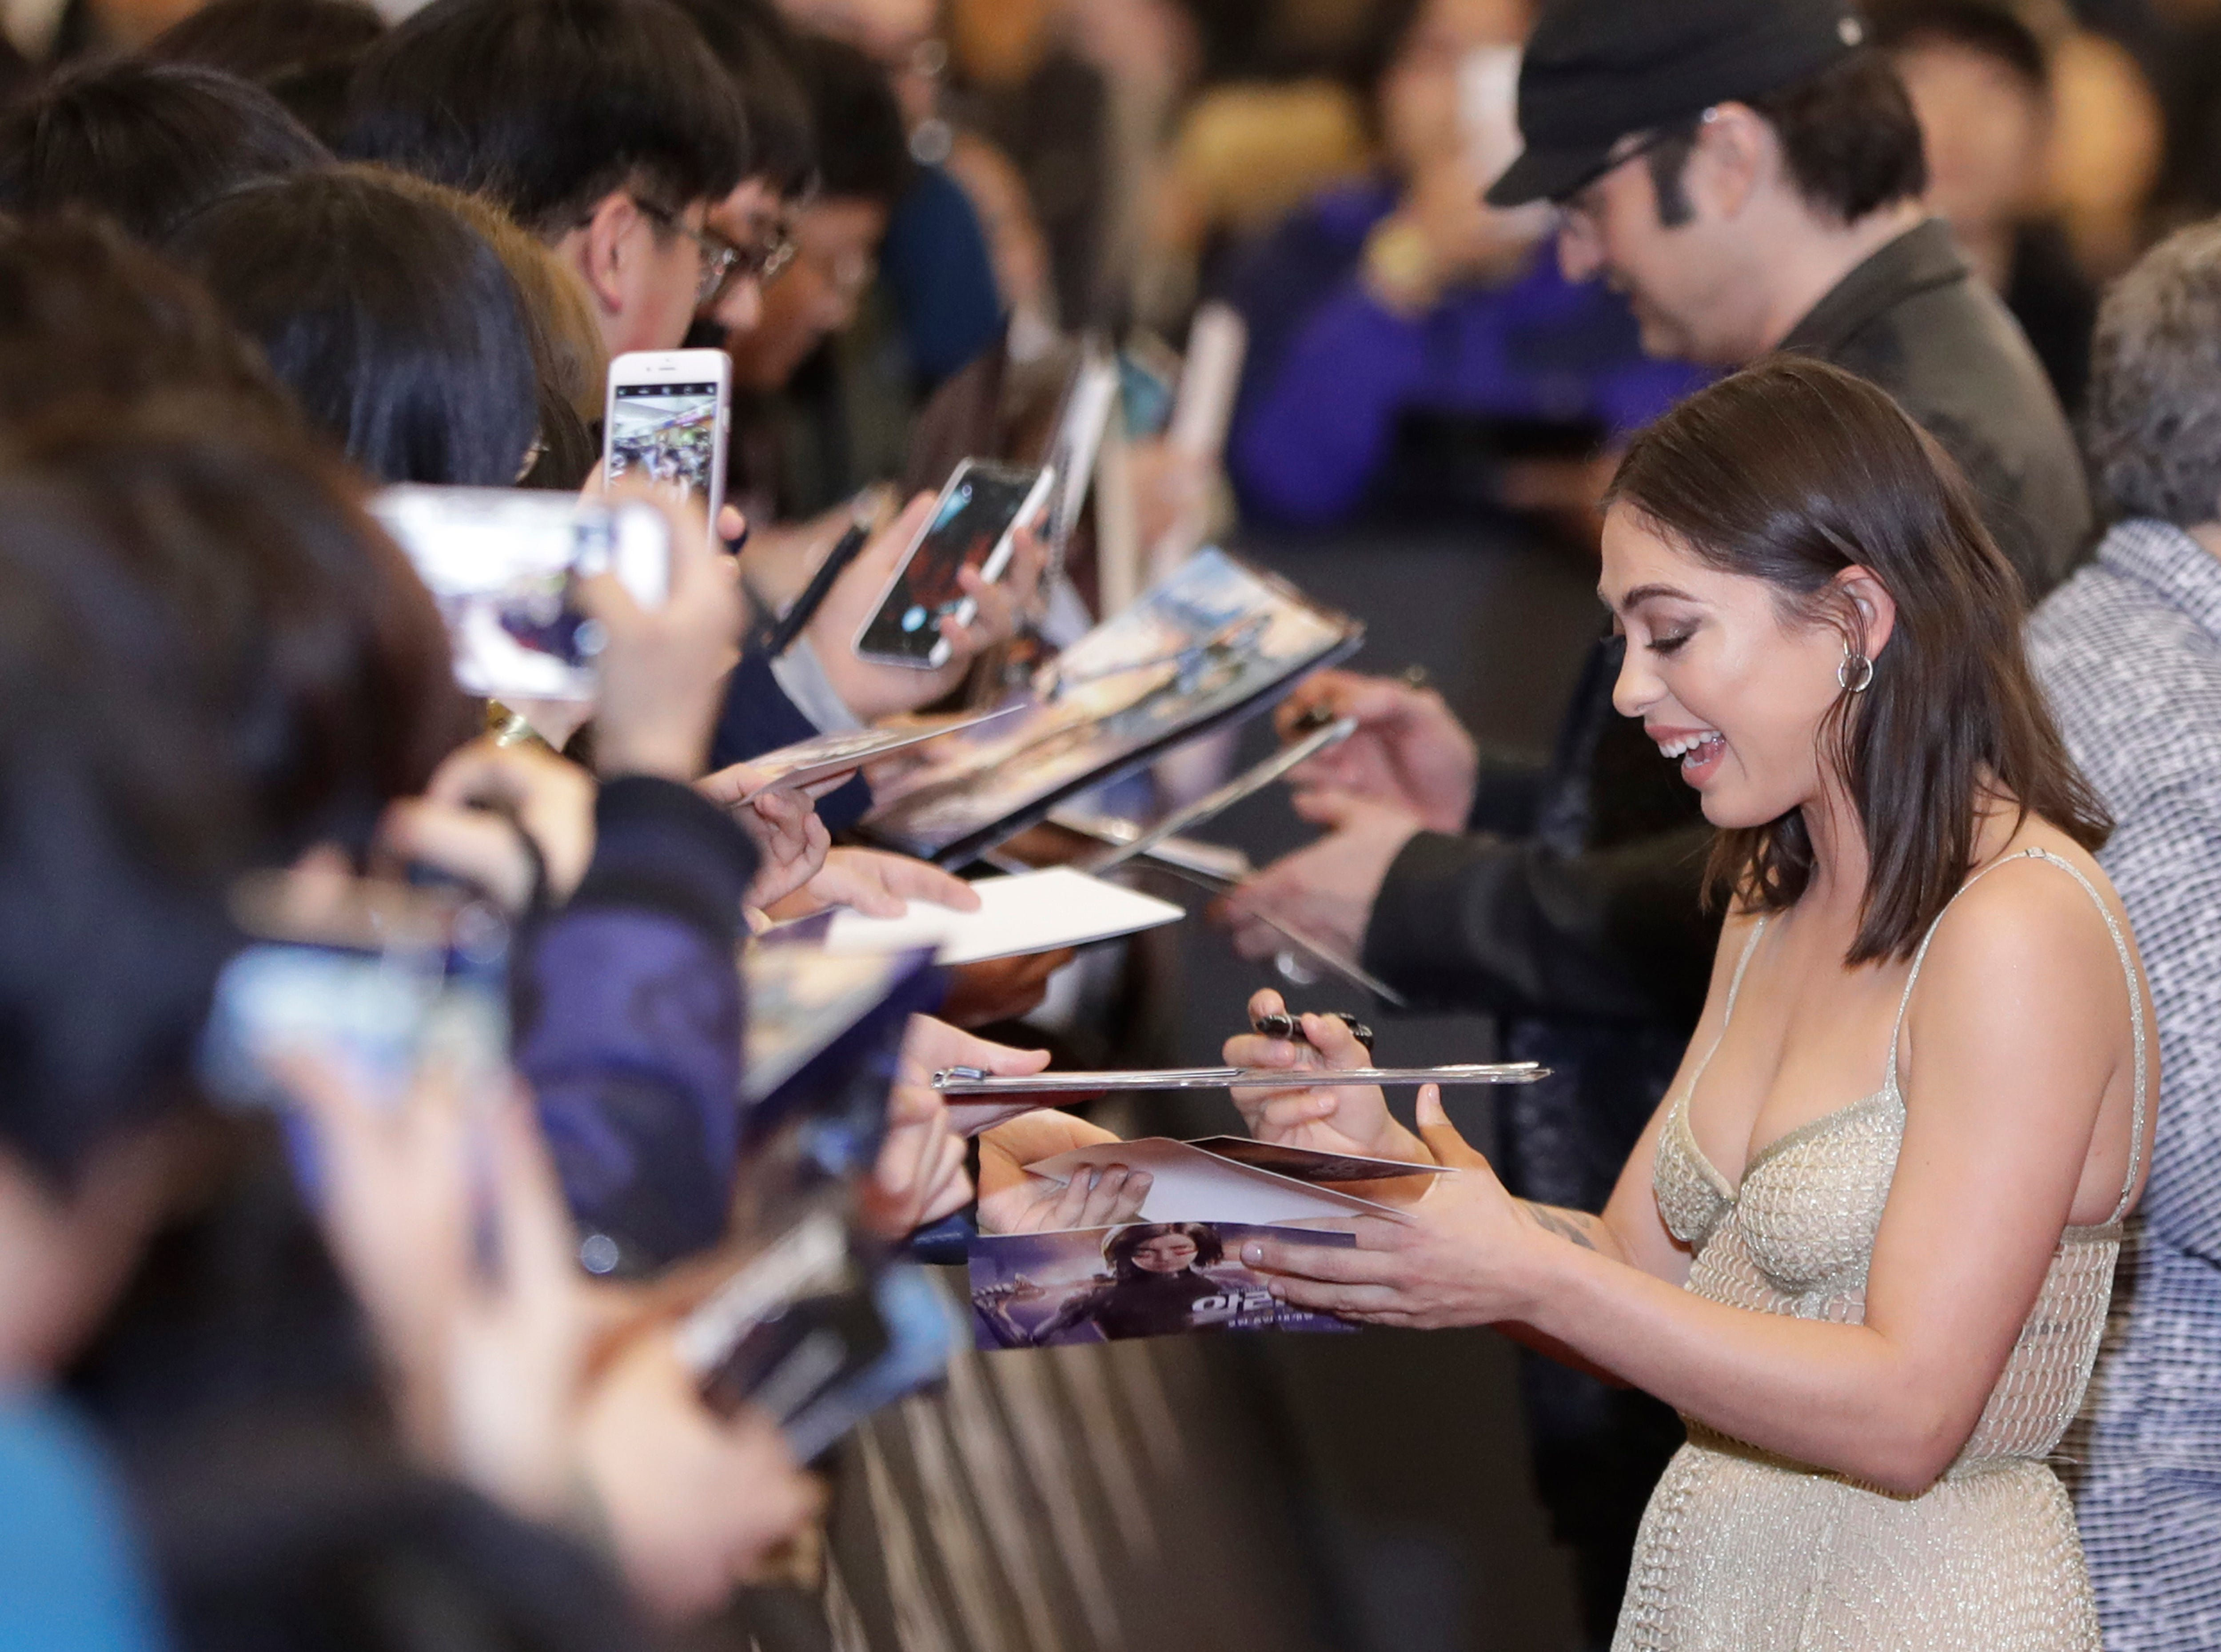 """Actress Rosa Salazar signs autographs for fans as she attends a red carpet event to promote her latest movie """"Alita: Battle Angel"""" in Seoul, South Korea, Friday, Jan. 25, 2019."""